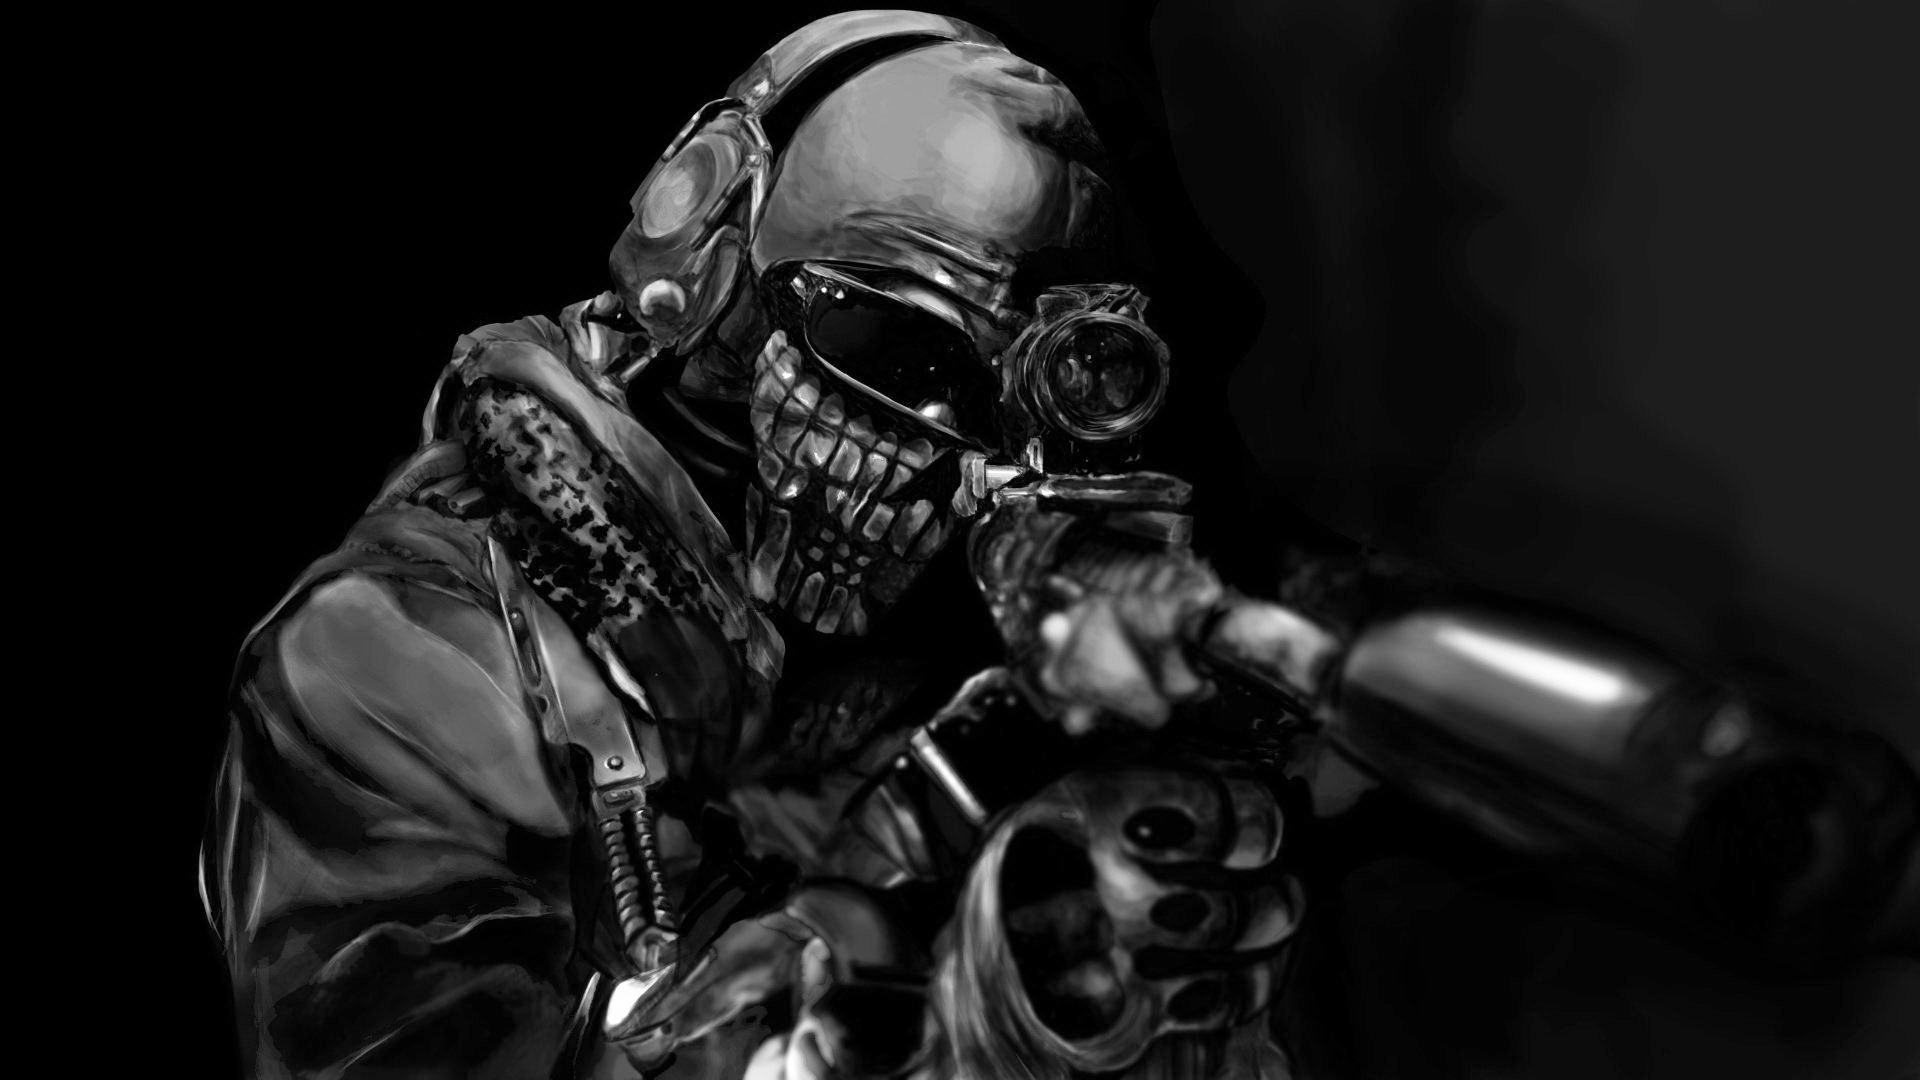 Awesome Call of Duty Wallpapers - WallpaperSafari